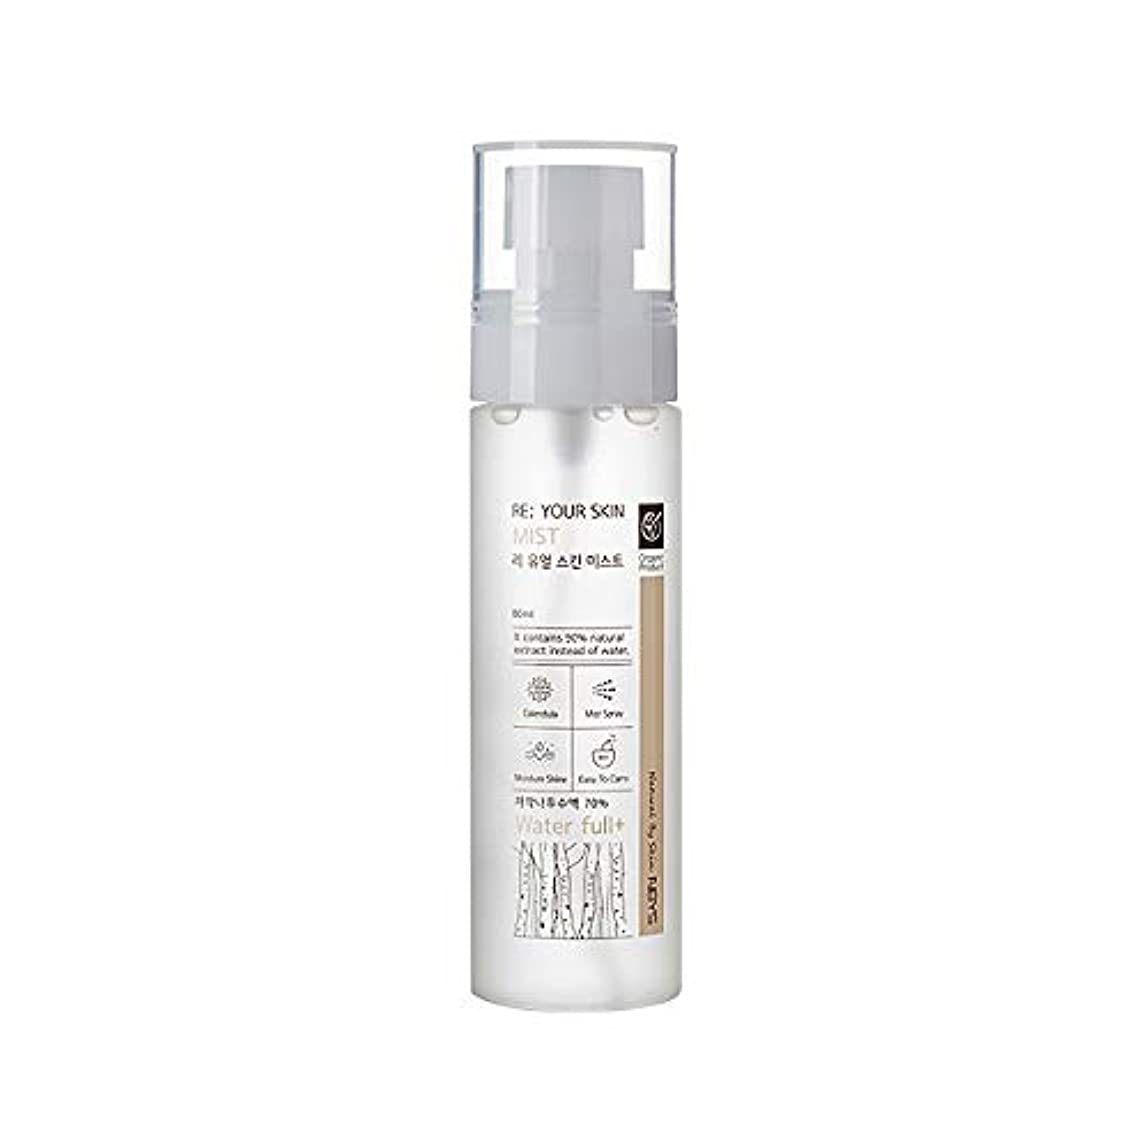 [NBYS] RE Your Skin Mist ミスト 80ml [並行輸入品]